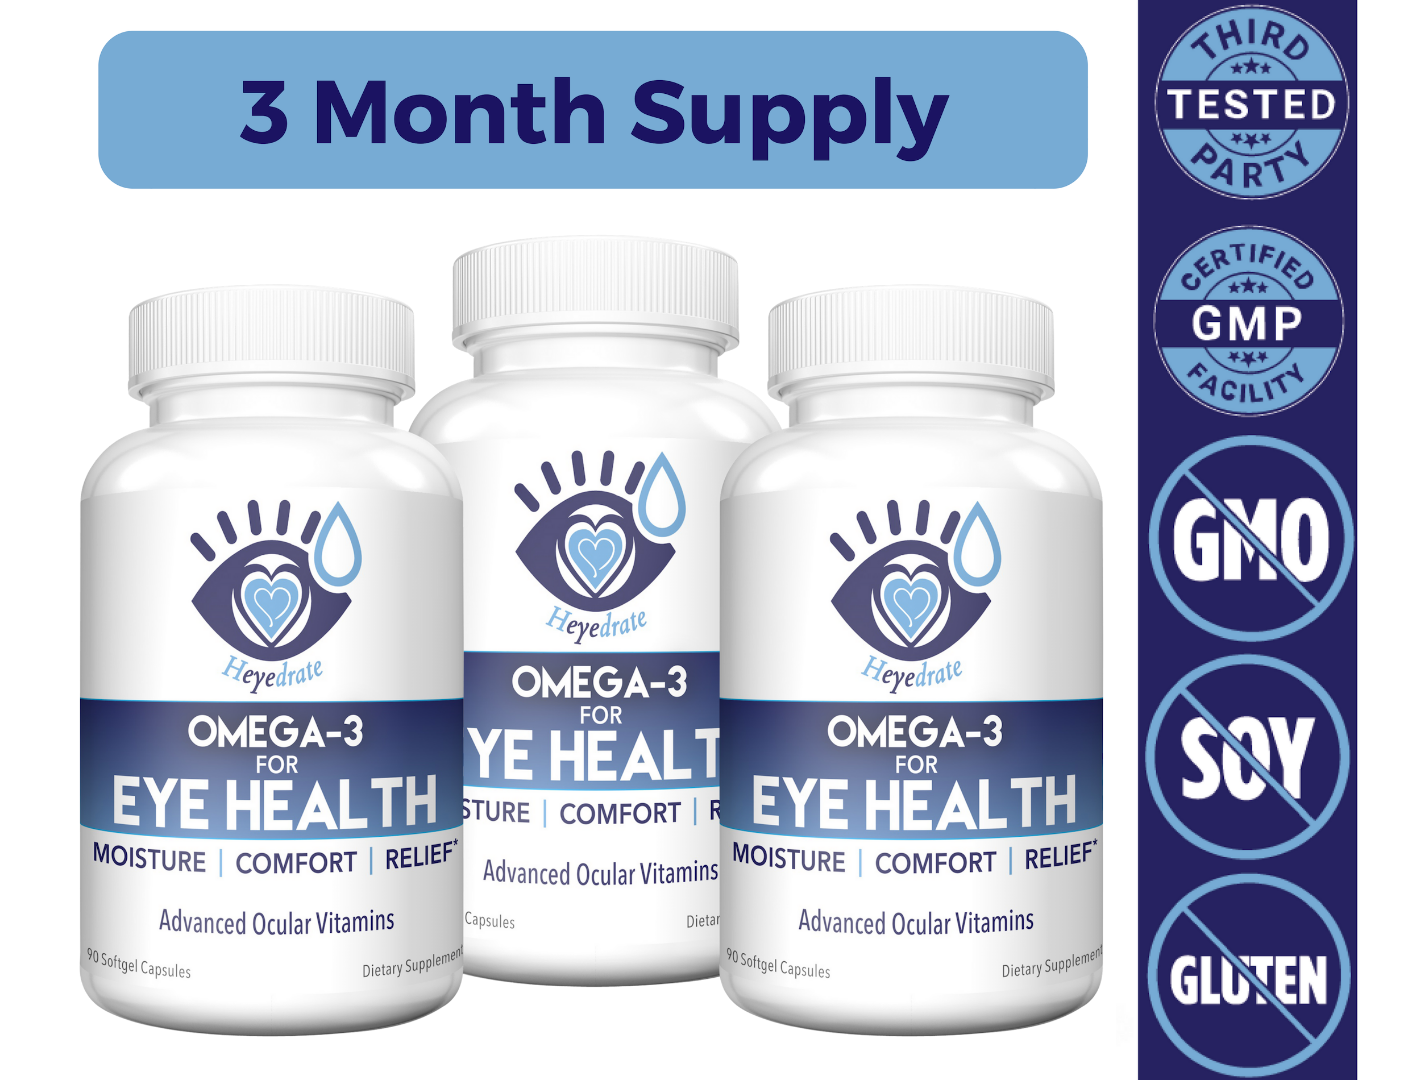 Heyedrate Omega-3 for Eye Health